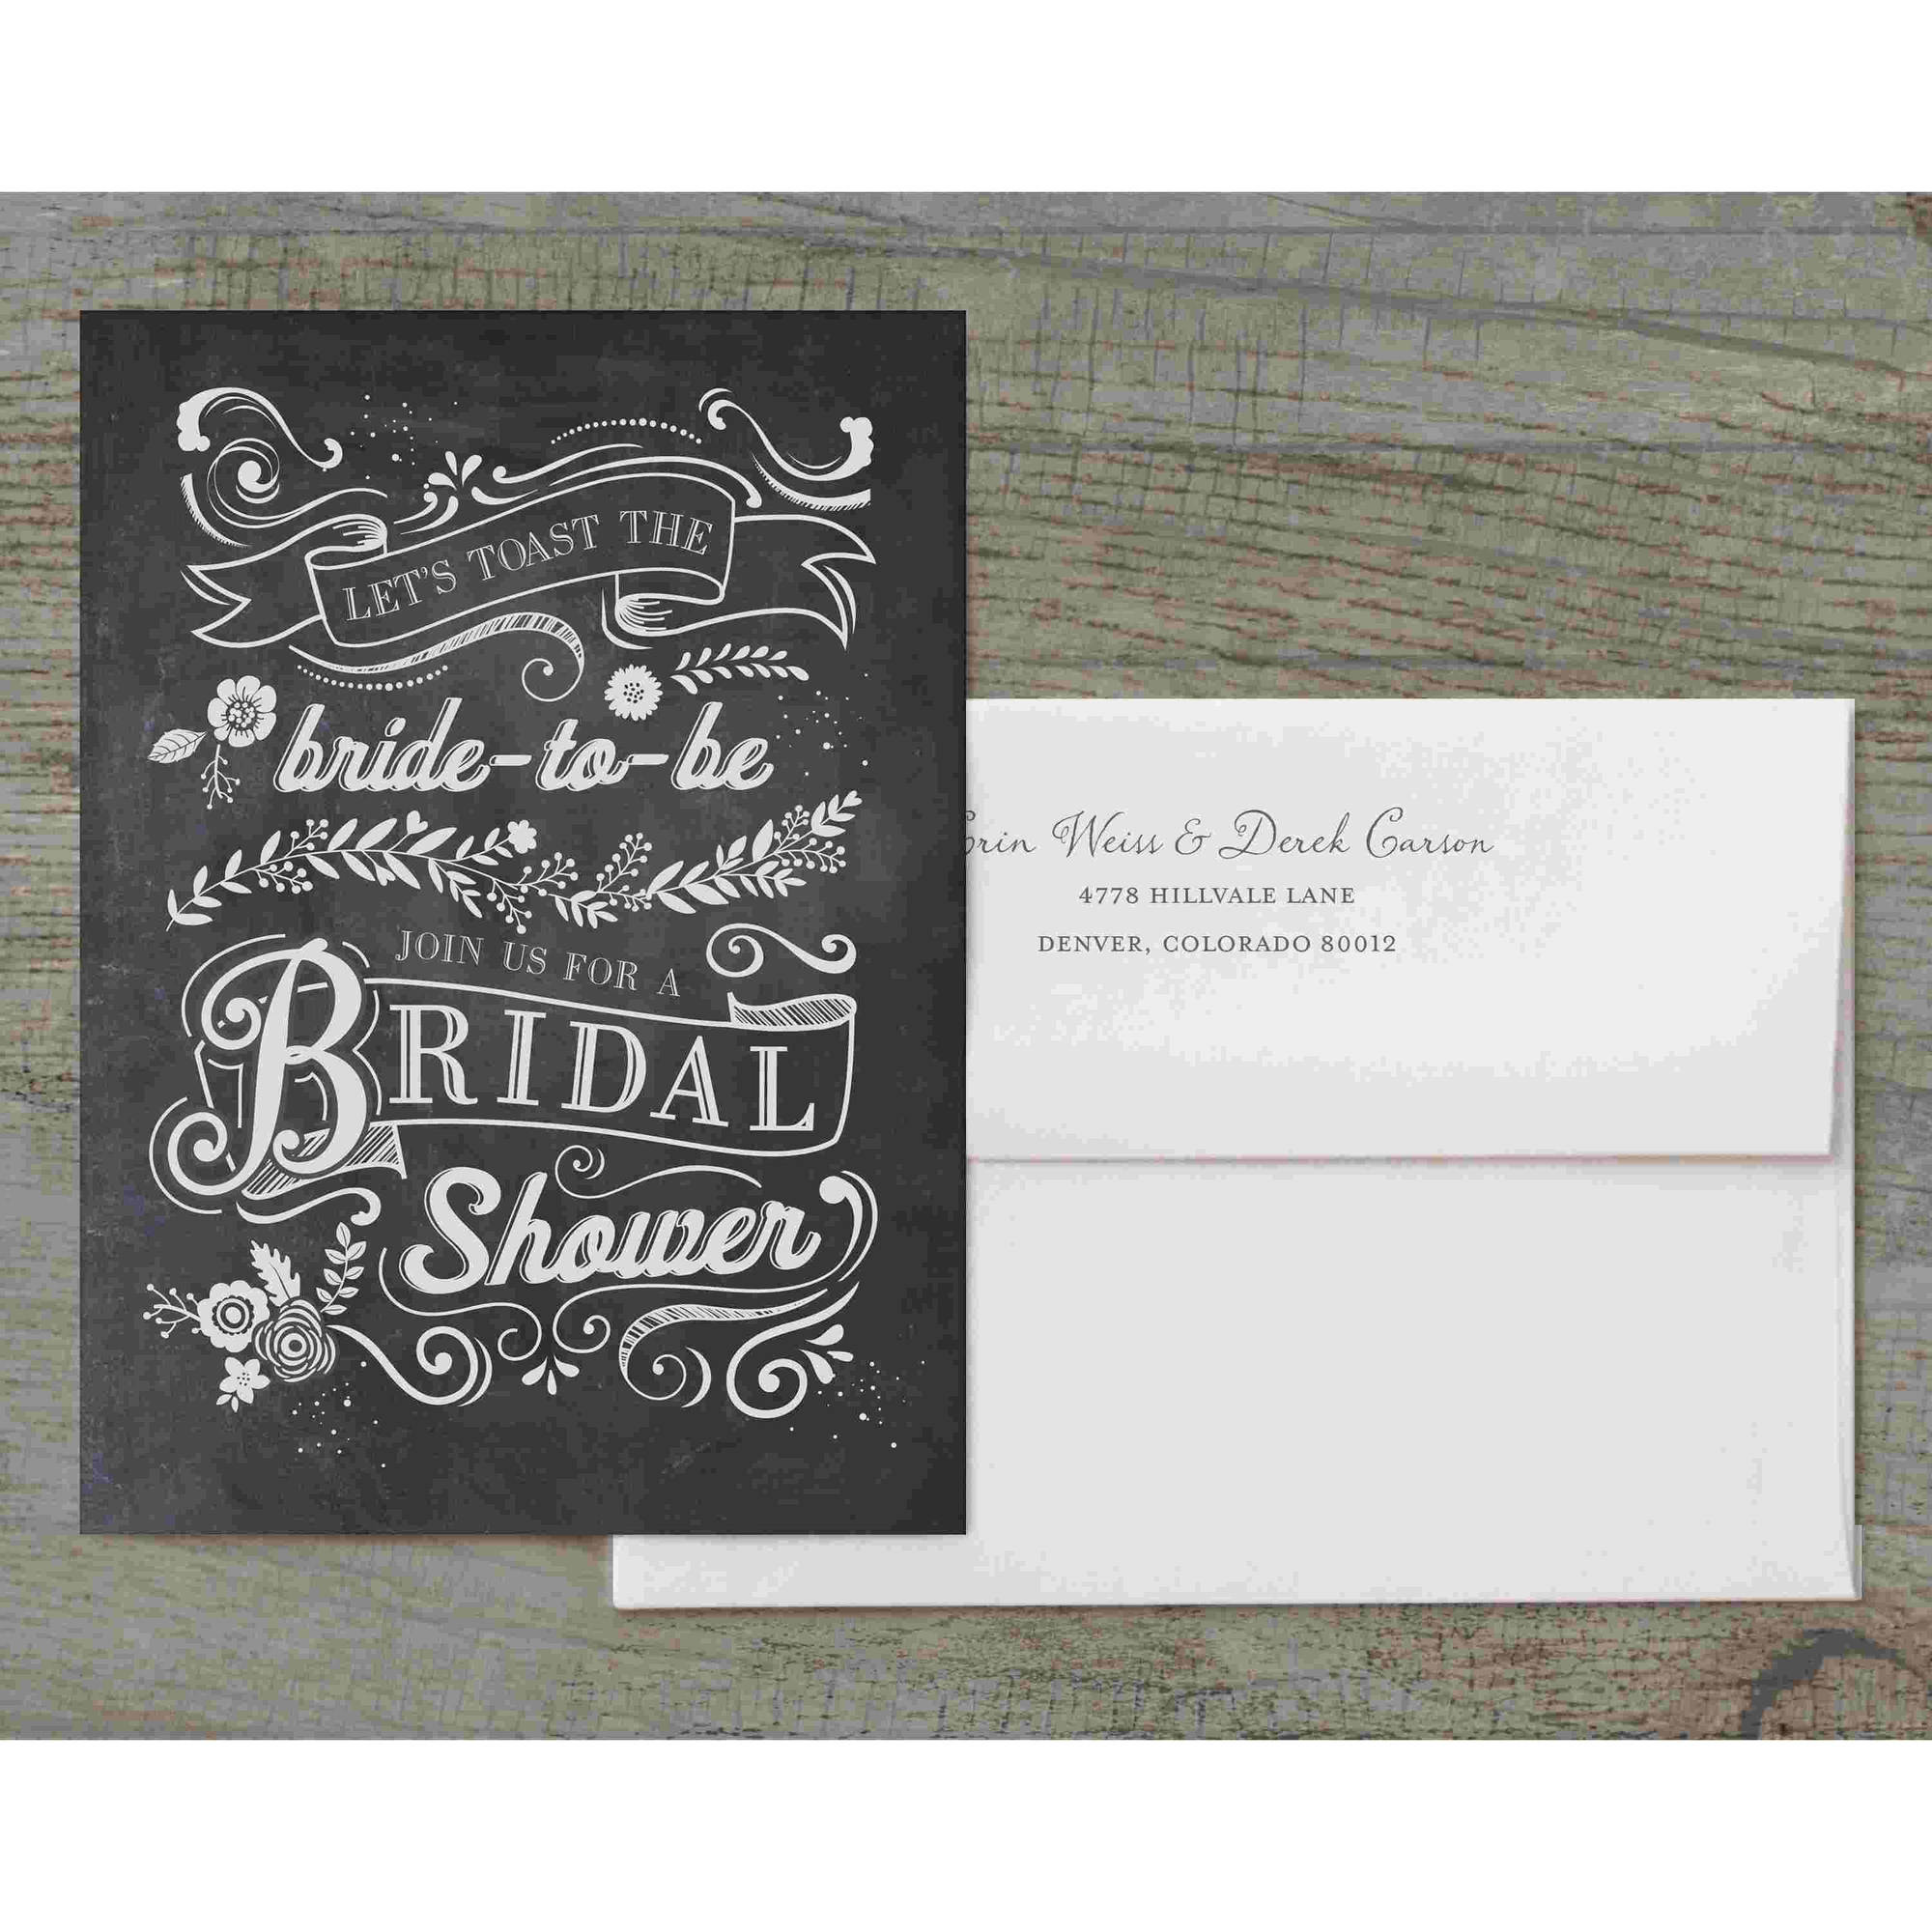 Let's Toast The Bride-To-Be Deluxe Bridal Shower Invitation